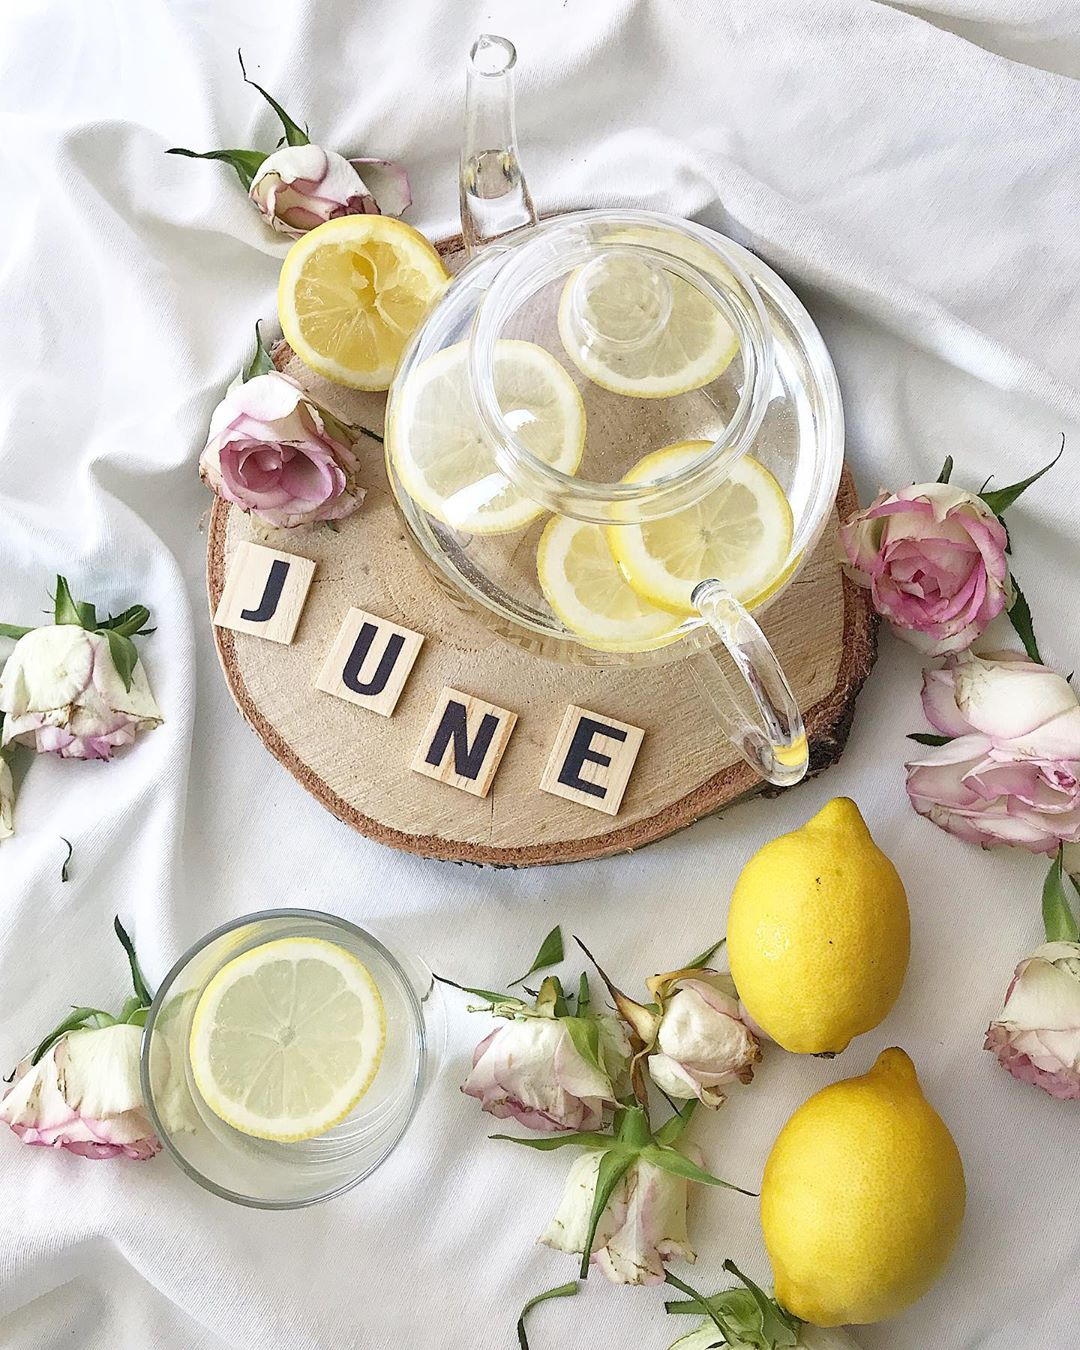 A welcoming June image. Source:  @e_sweet_little_home_